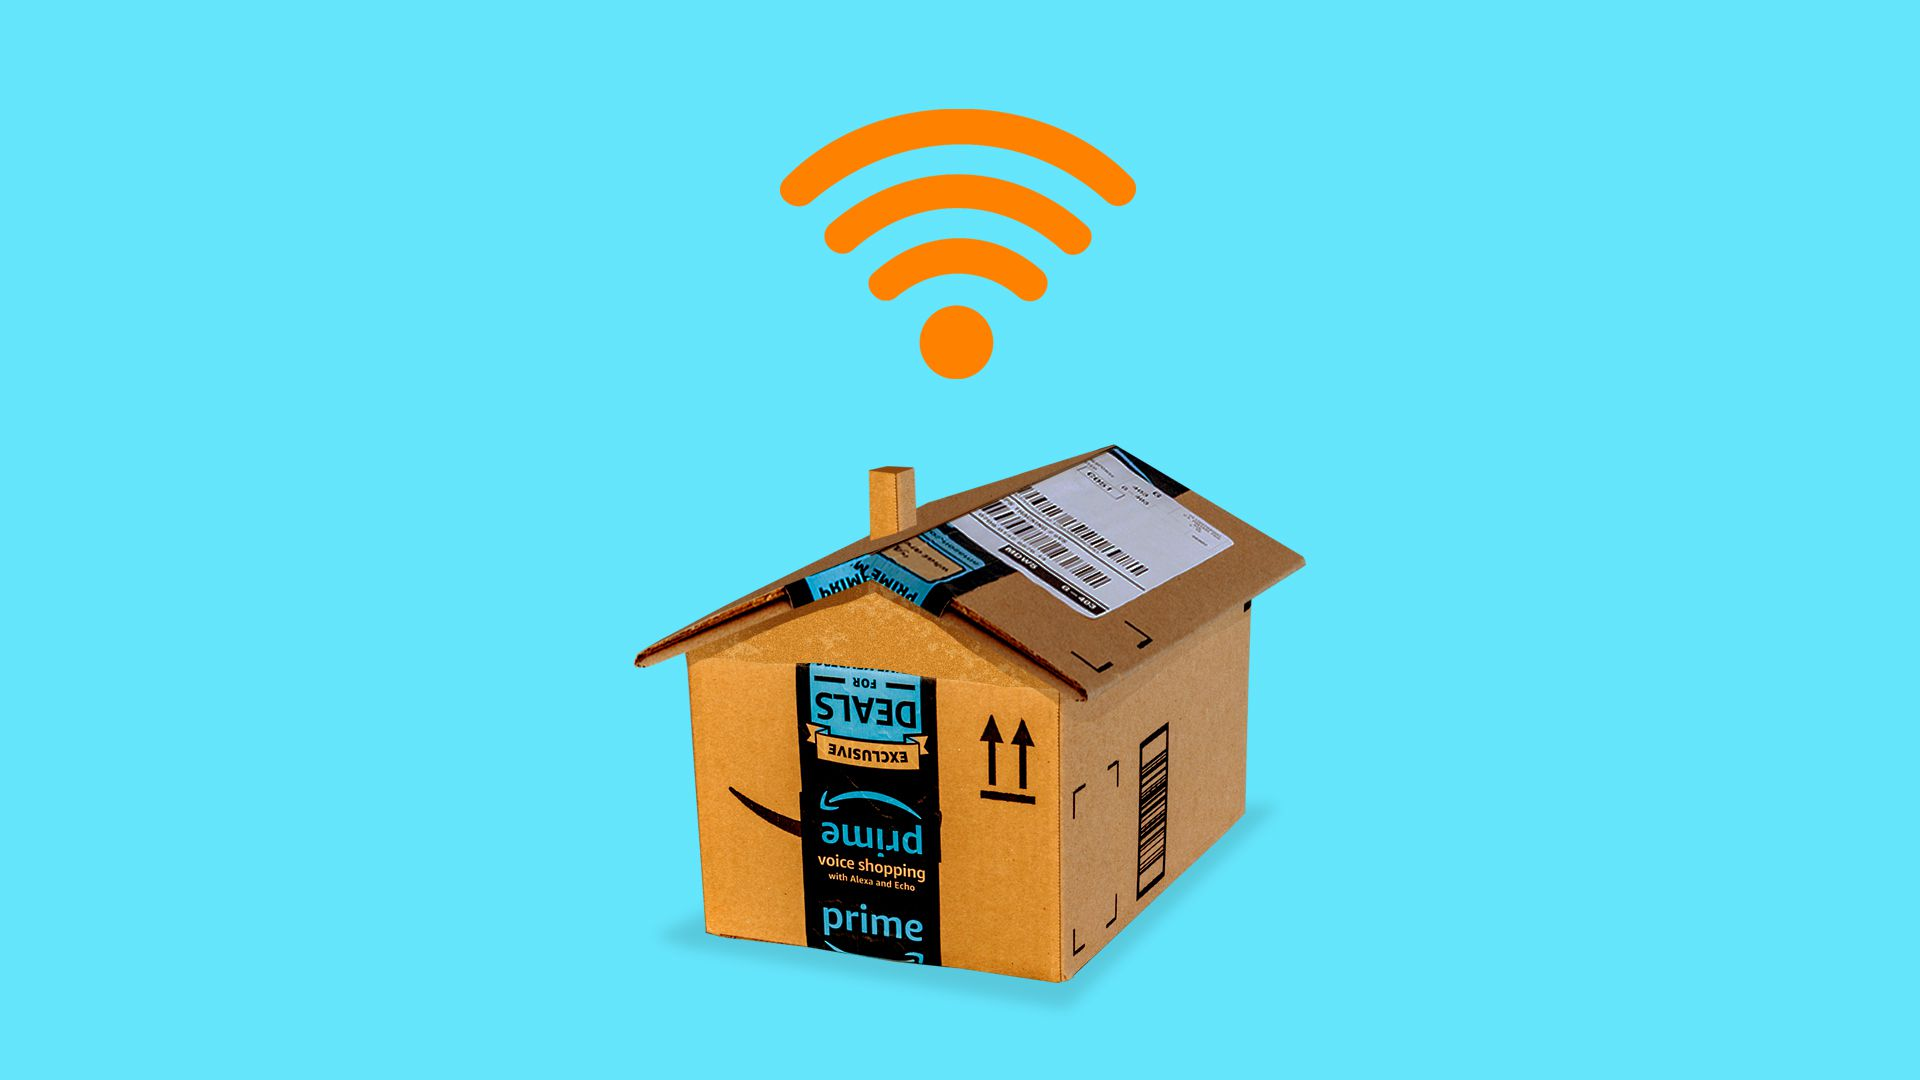 An illustration of a house made out of Amazon packaging and a wireless icon above it